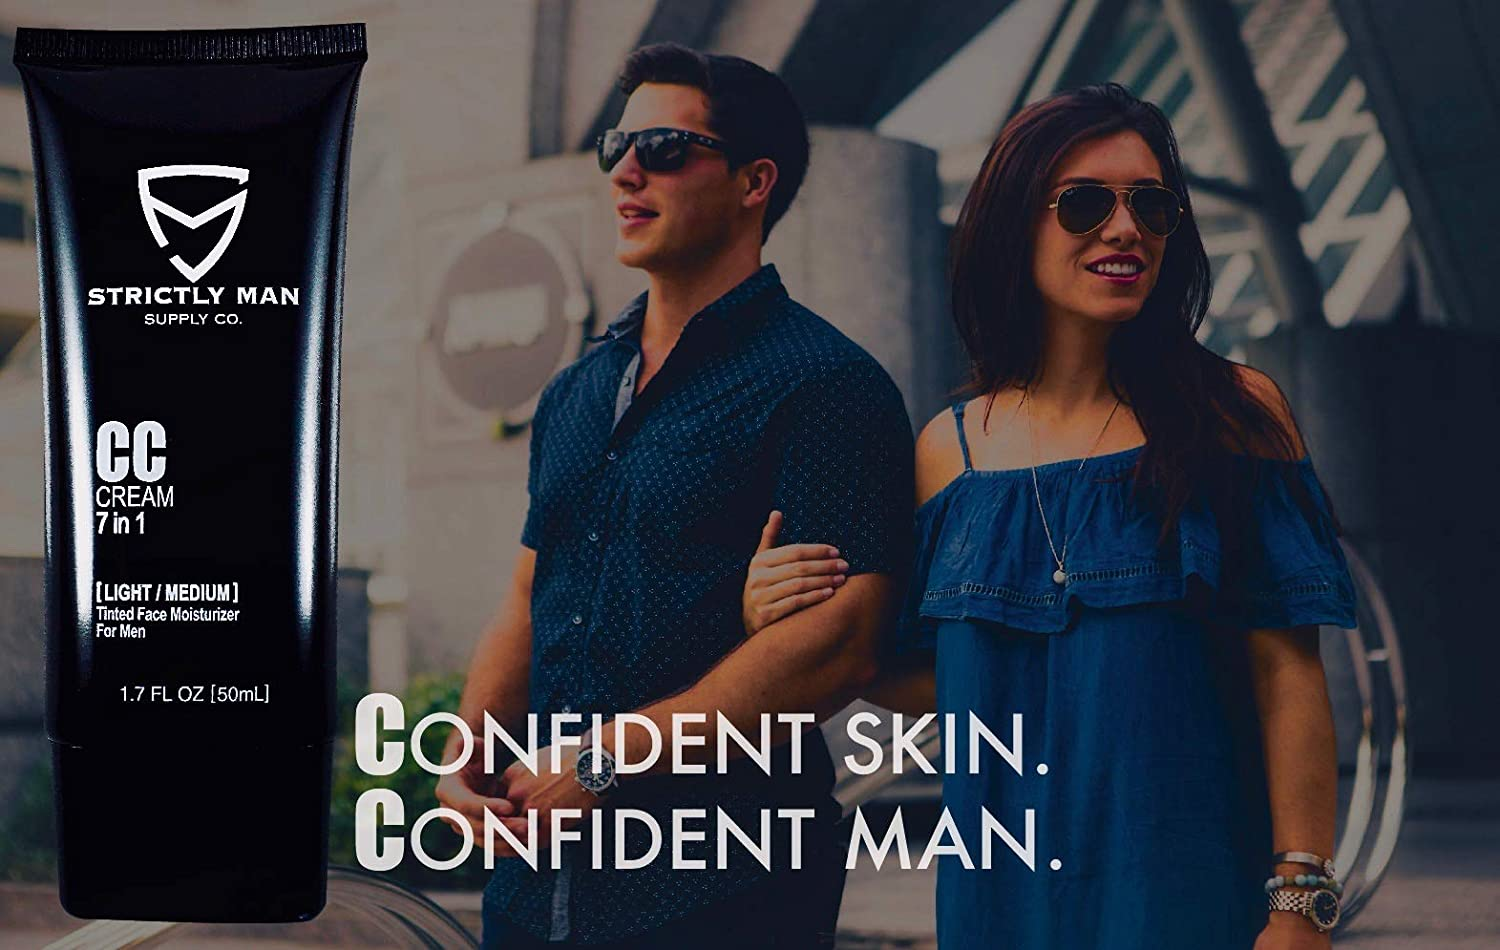 76f7c1da60e Amazon.com  CC Cream for Men by Strictly Man Supply Co.